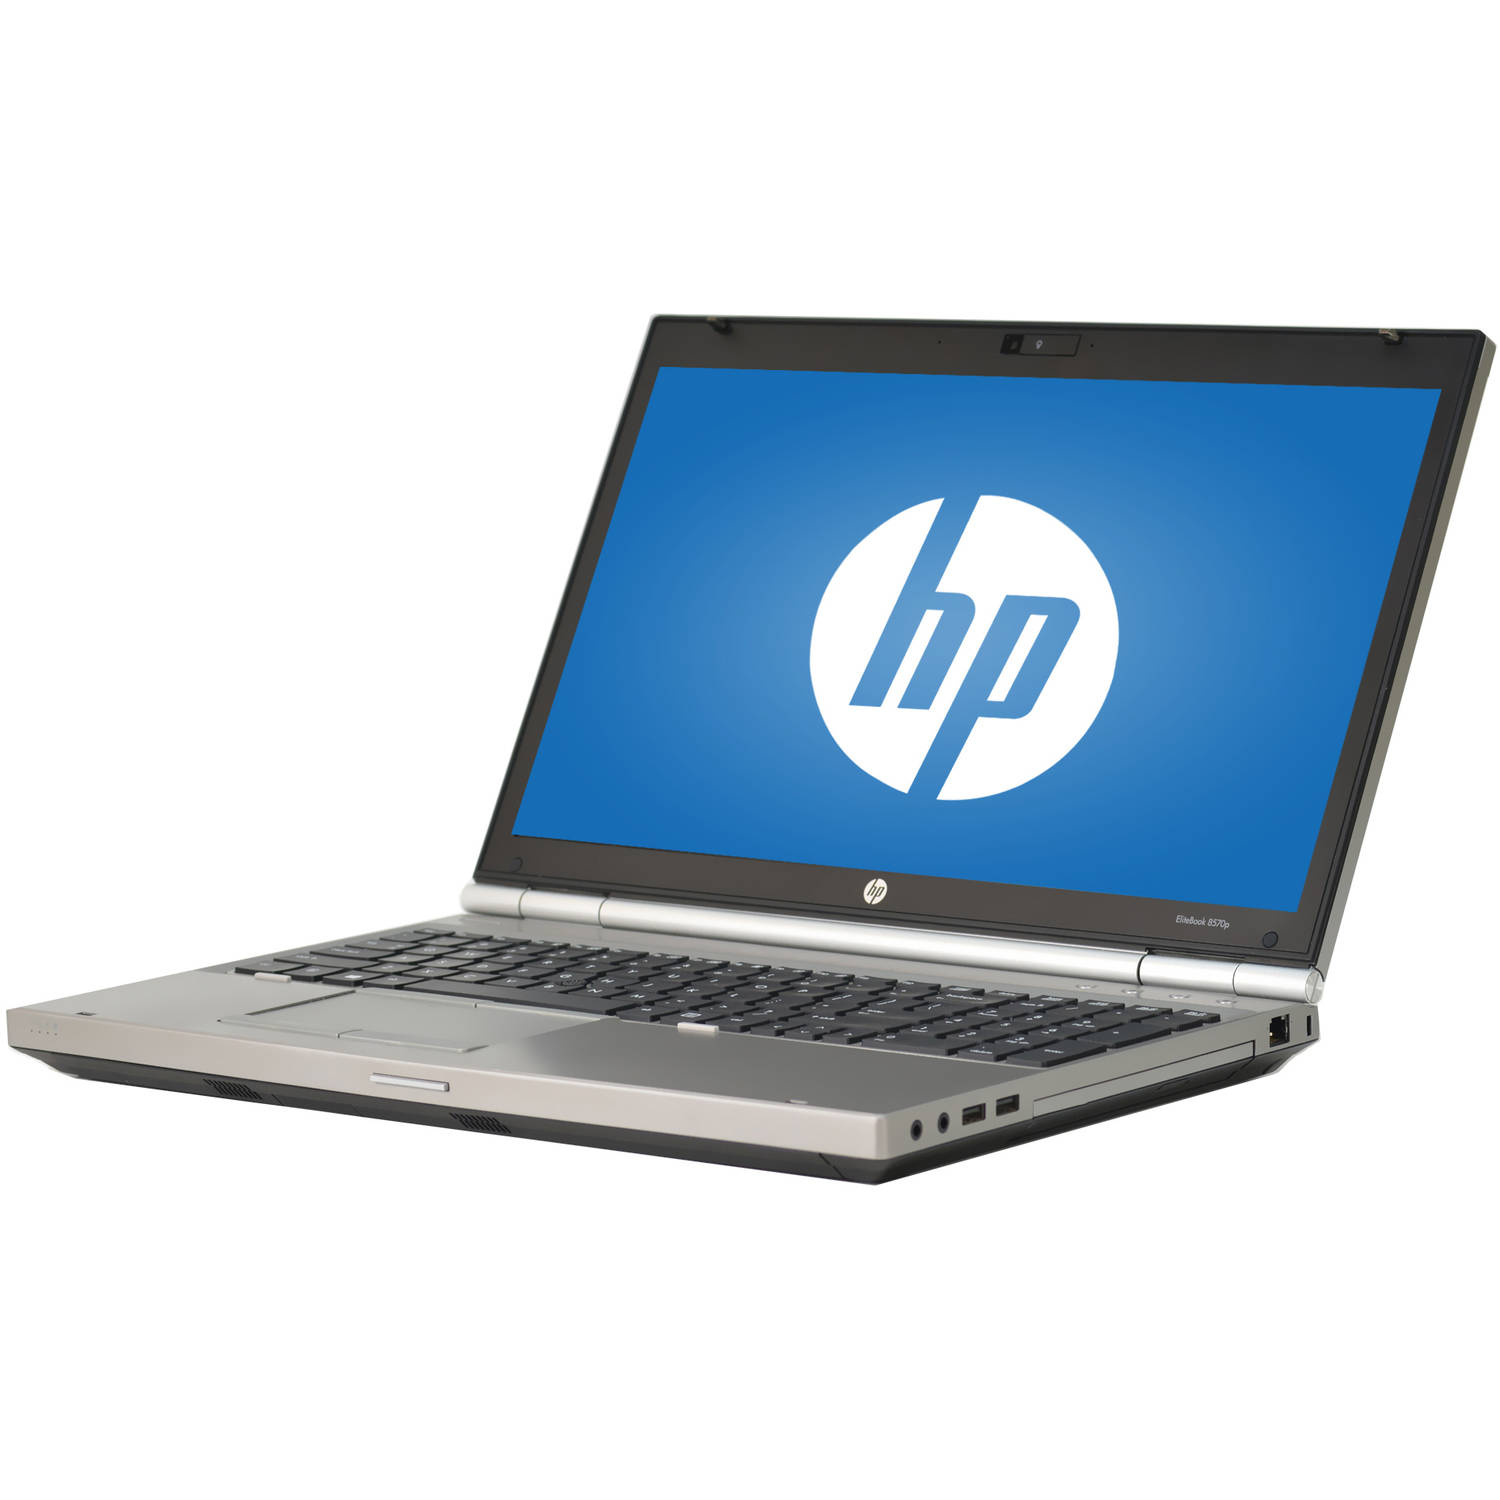 "Refurbished HP 15.6"" EliteBook 8570P Laptop PC with Intel Core i7-3720QM Processor, 16GB Memory, 256GB Solid State Drive and Windows 7 Professional"